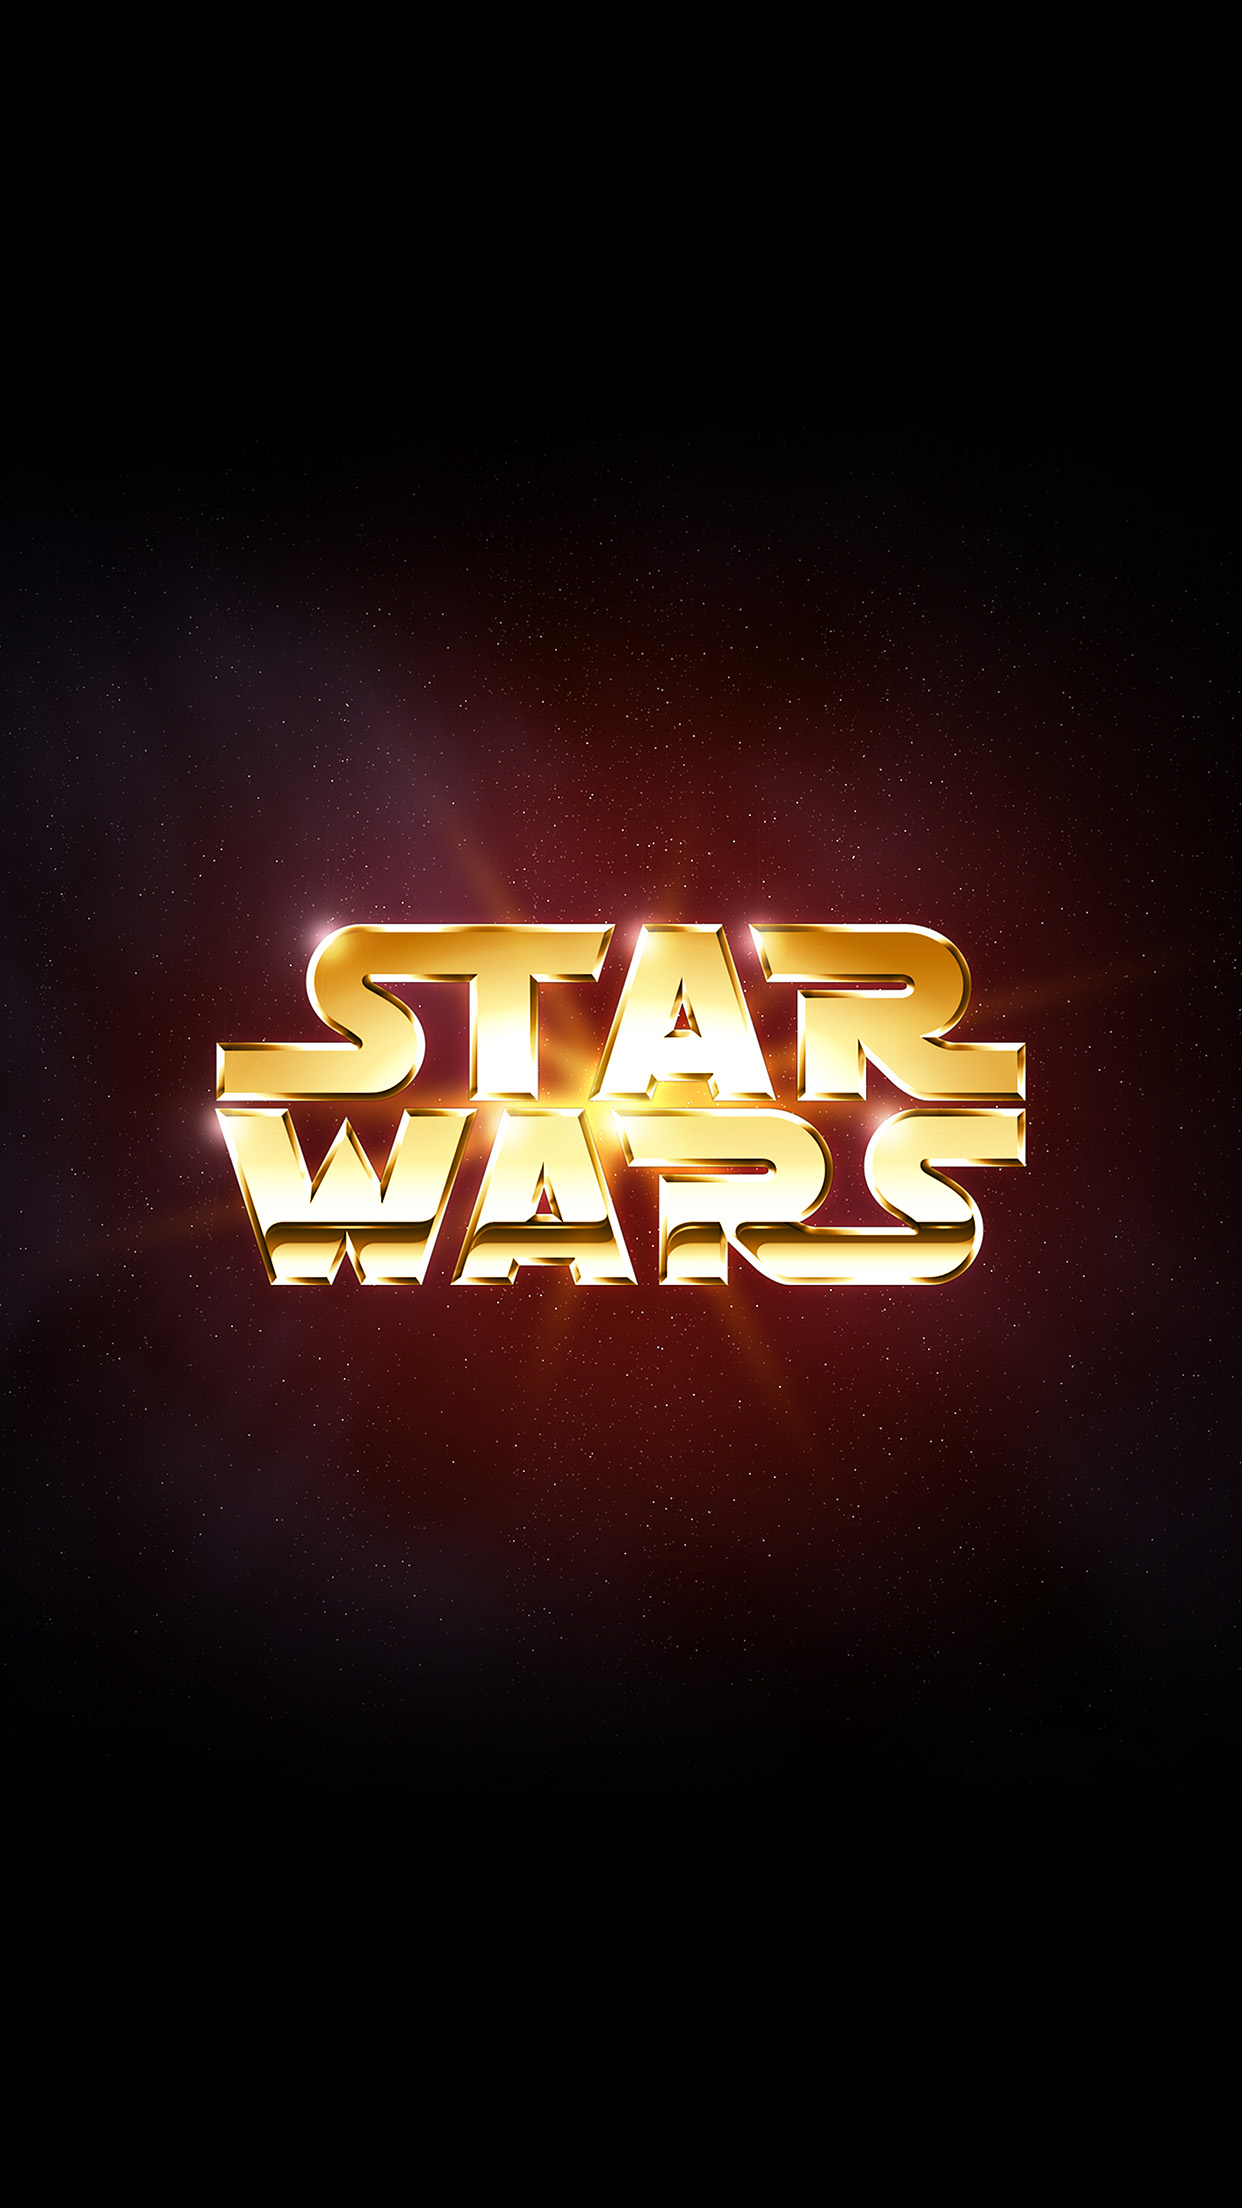 logo starwars dark film art